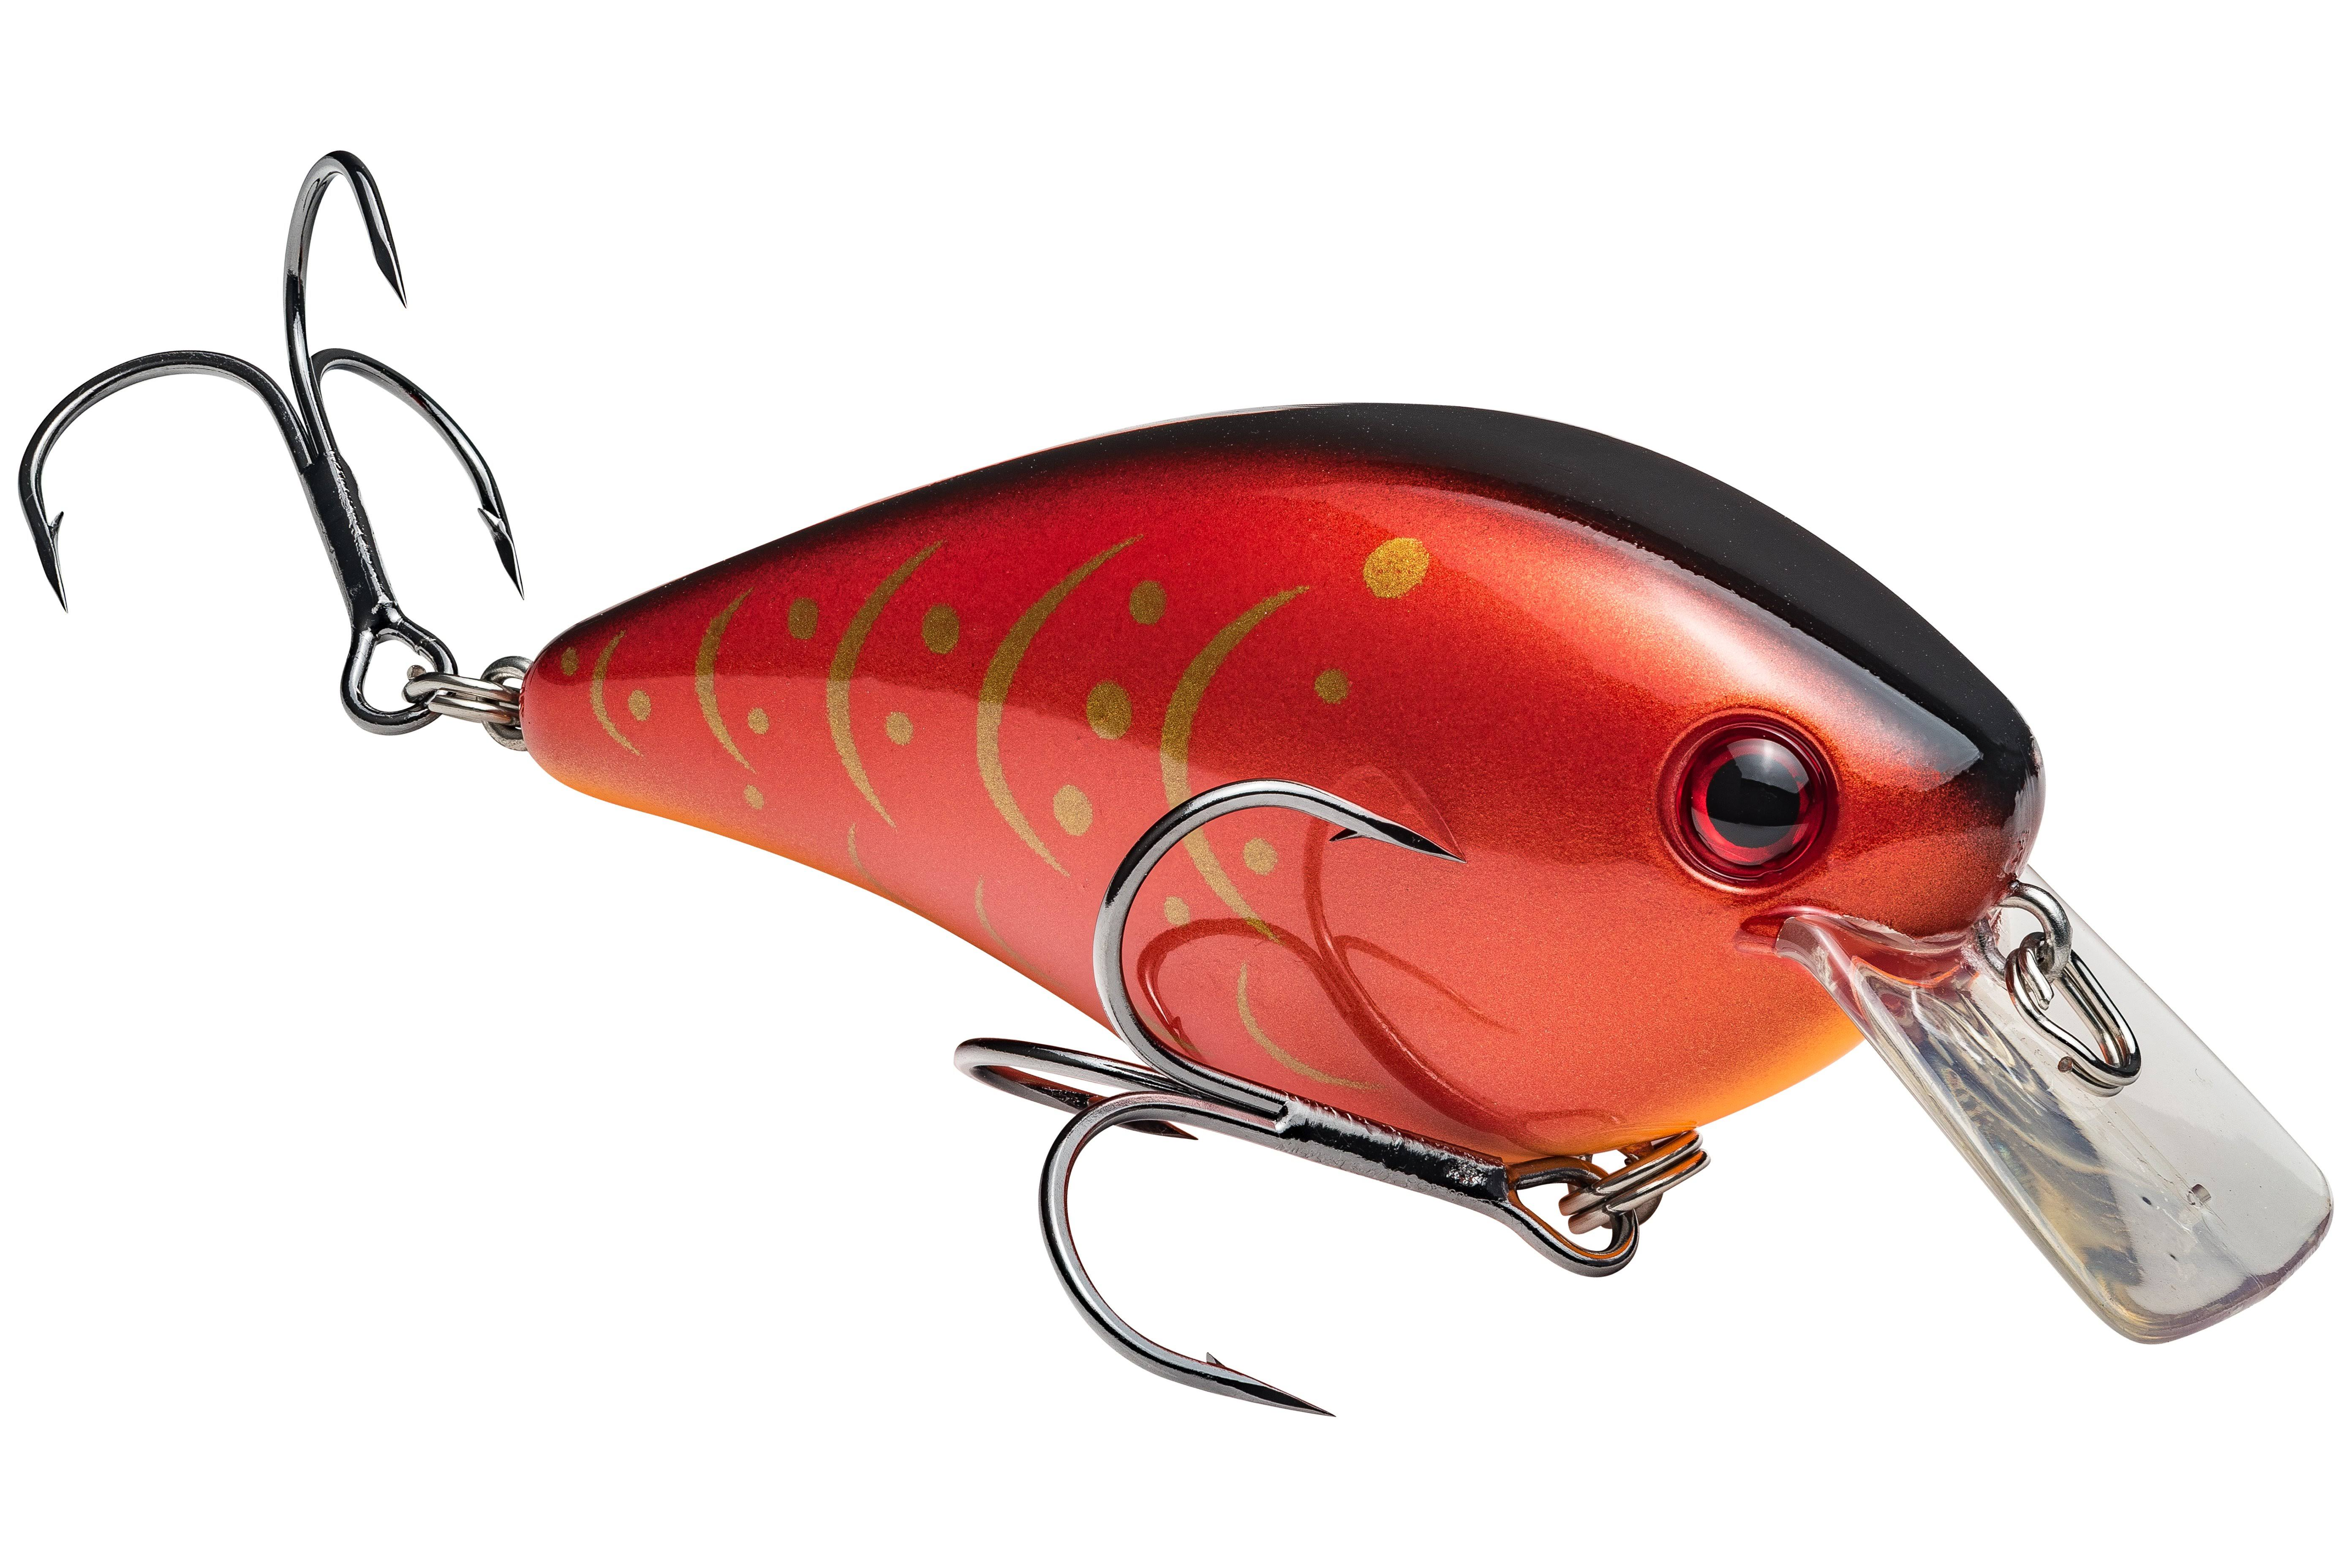 Strike King KVD Square Bill Silent Crankbait Lure - Rayburn Red Craw, 2.5oz